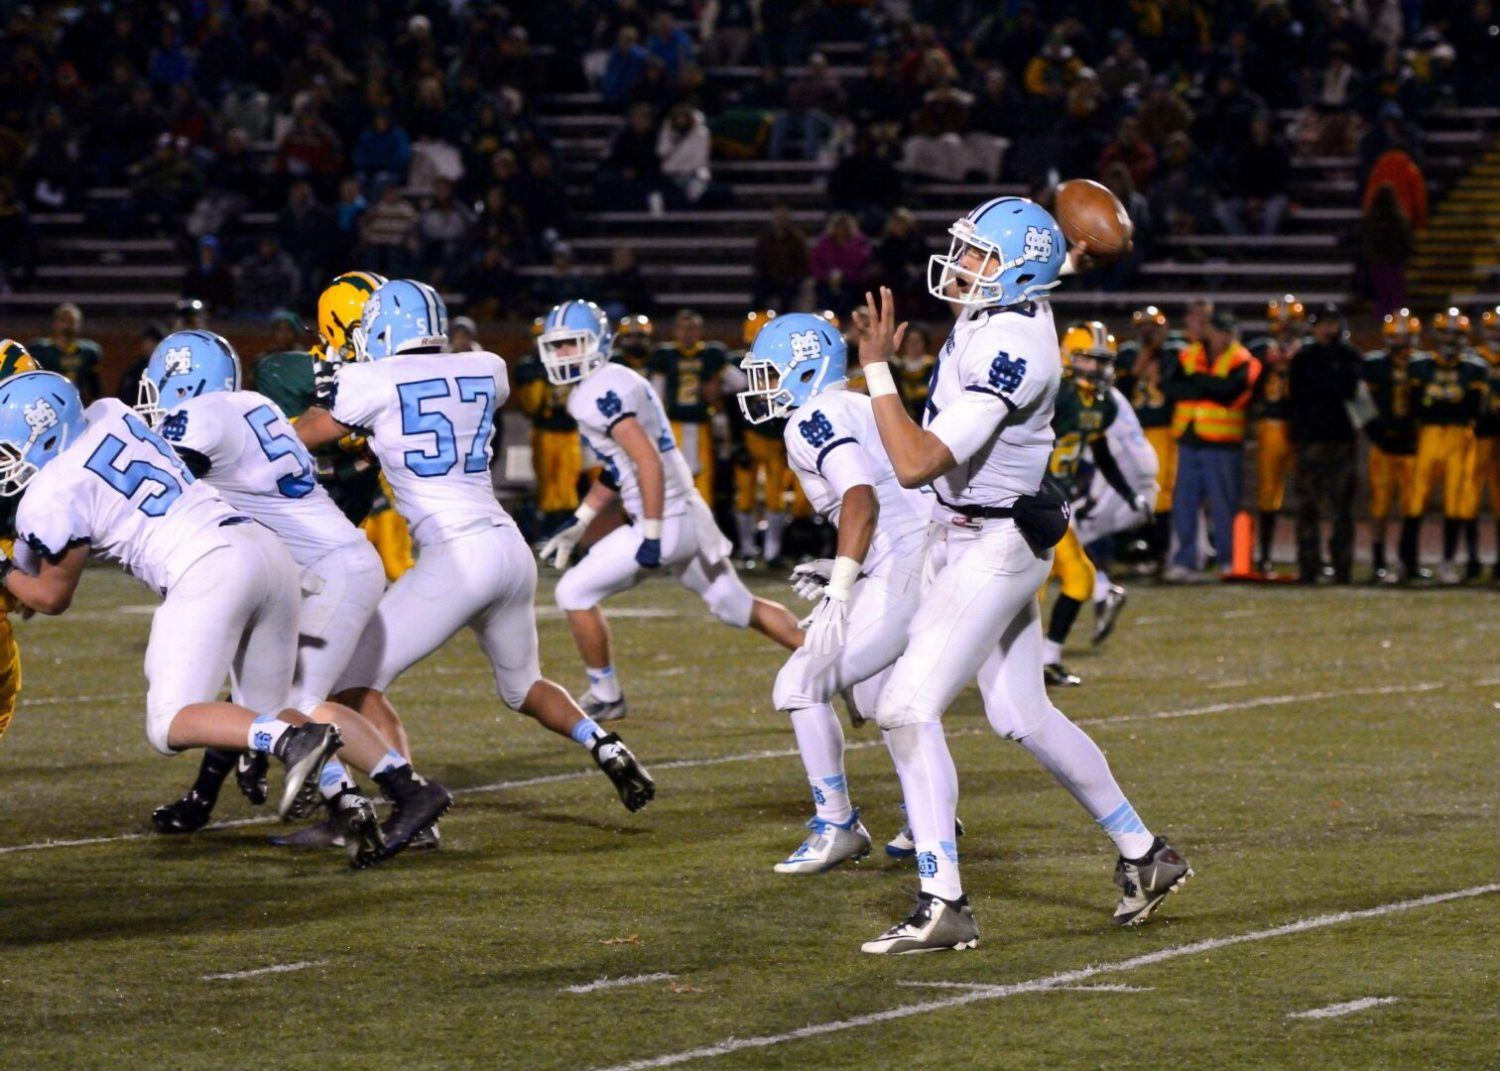 Dates and times set for next weekend's regional high school football playoff games